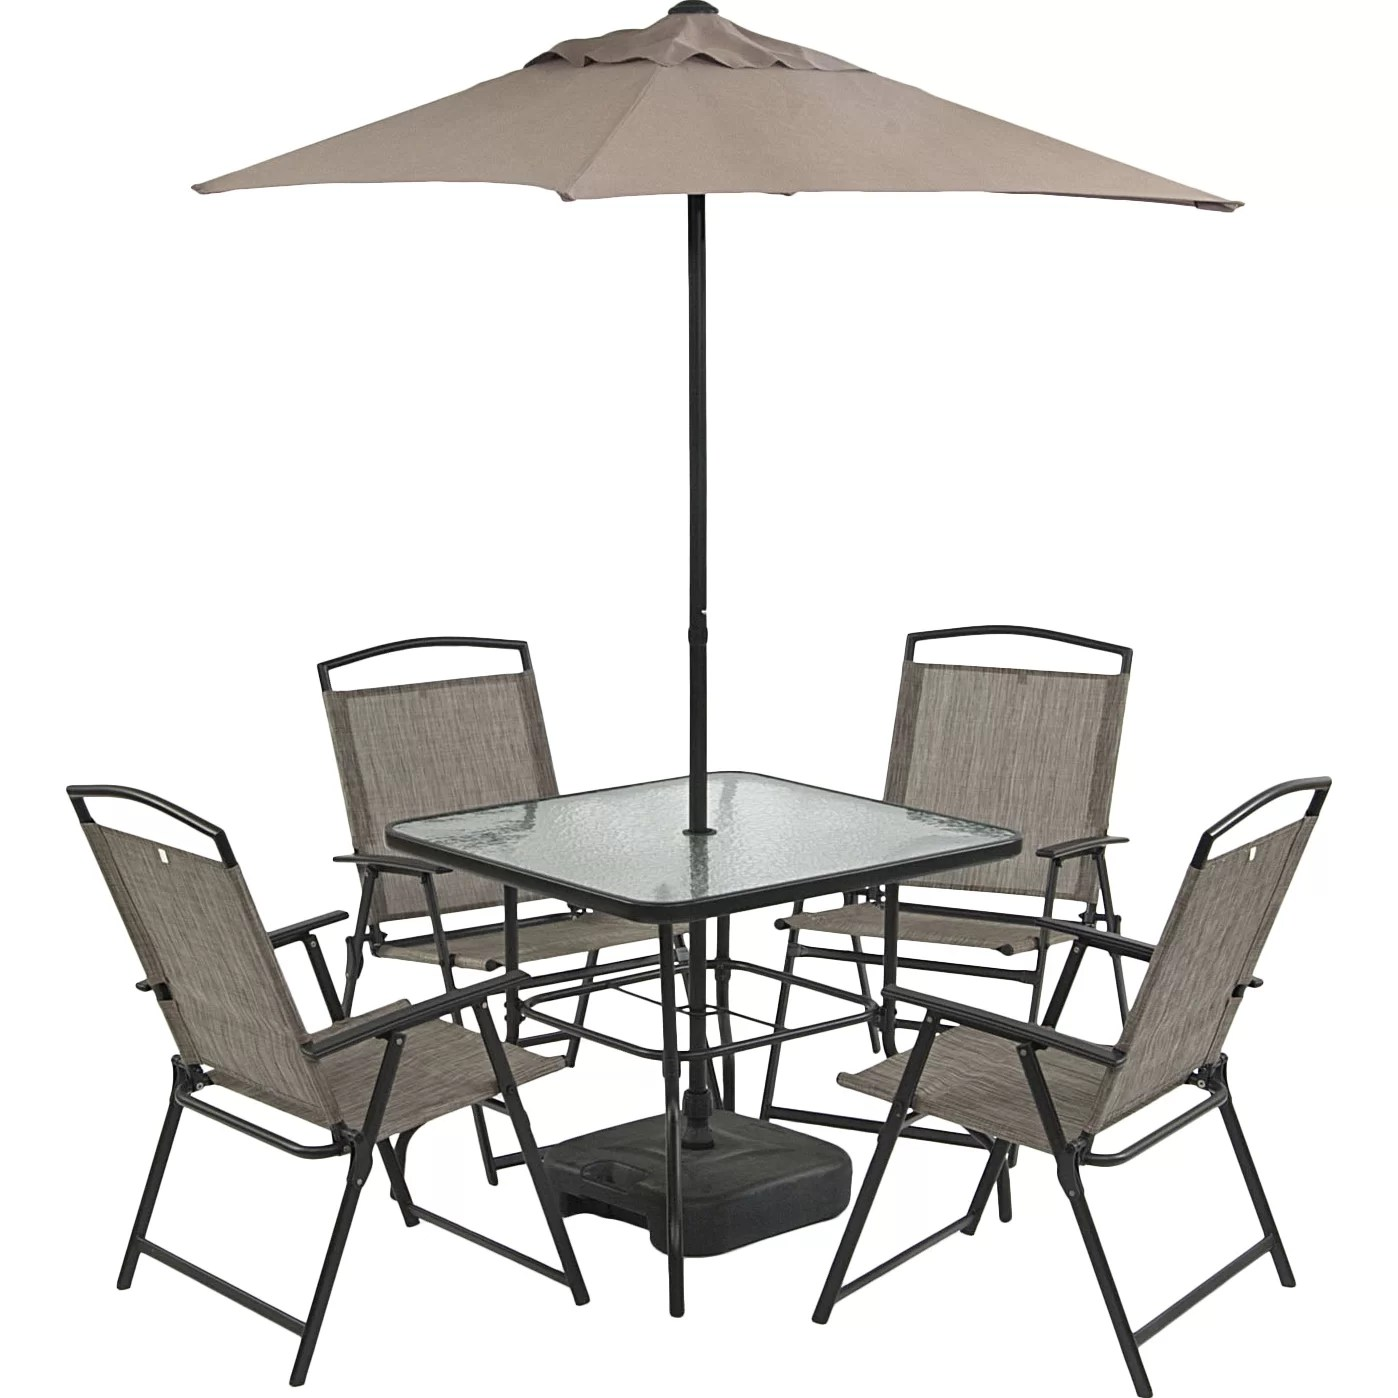 SunTime Outdoor Living Oasis 7 Piece Dining Set & Reviews ... on Suntime Outdoor Living  id=61051